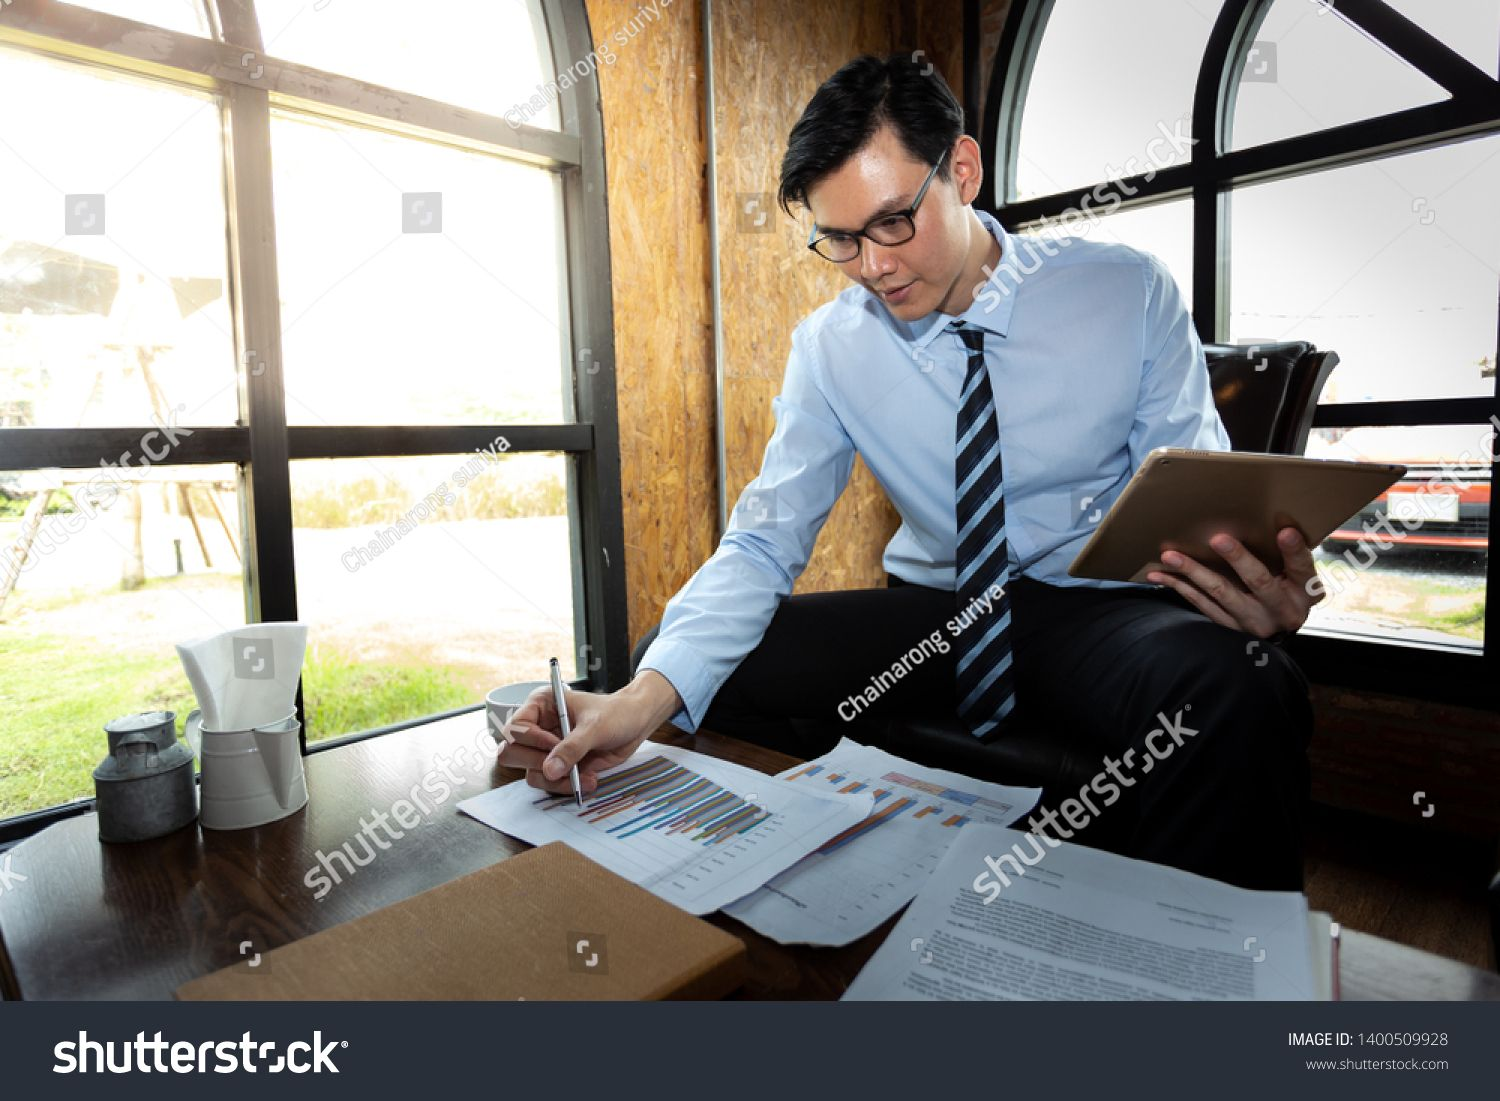 A Businessman Is Writing On Paper While Working On Tablet In